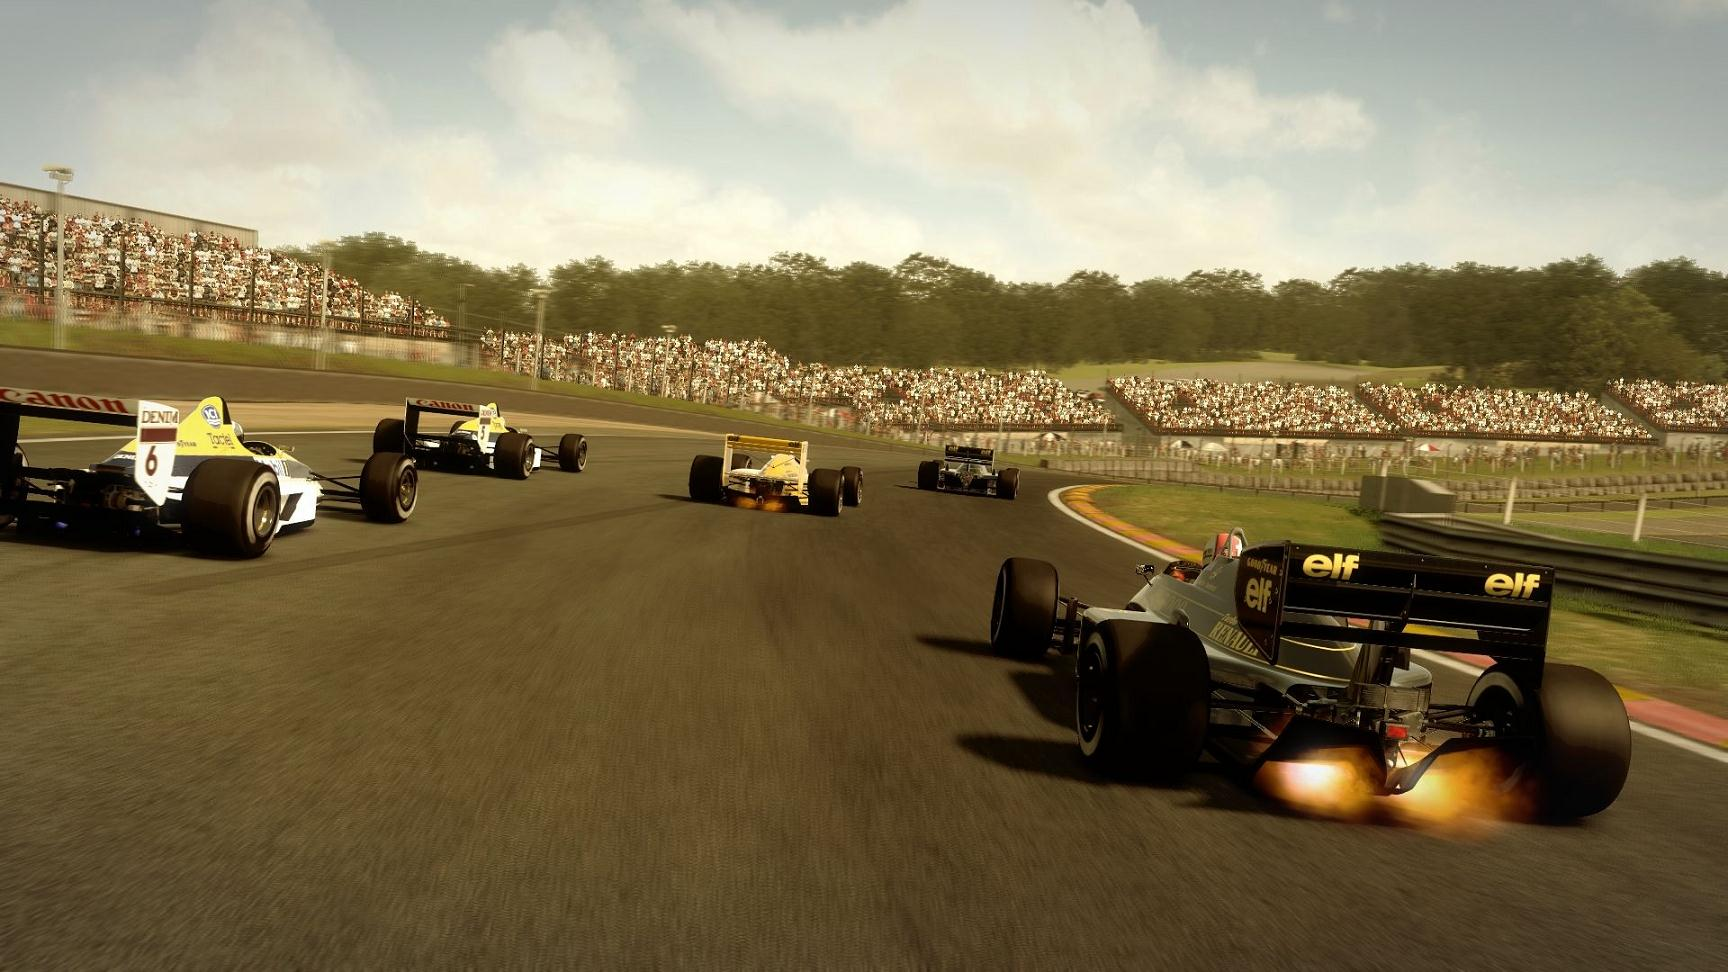 F1 2013 (Steam Gift / Region Free / ROW)